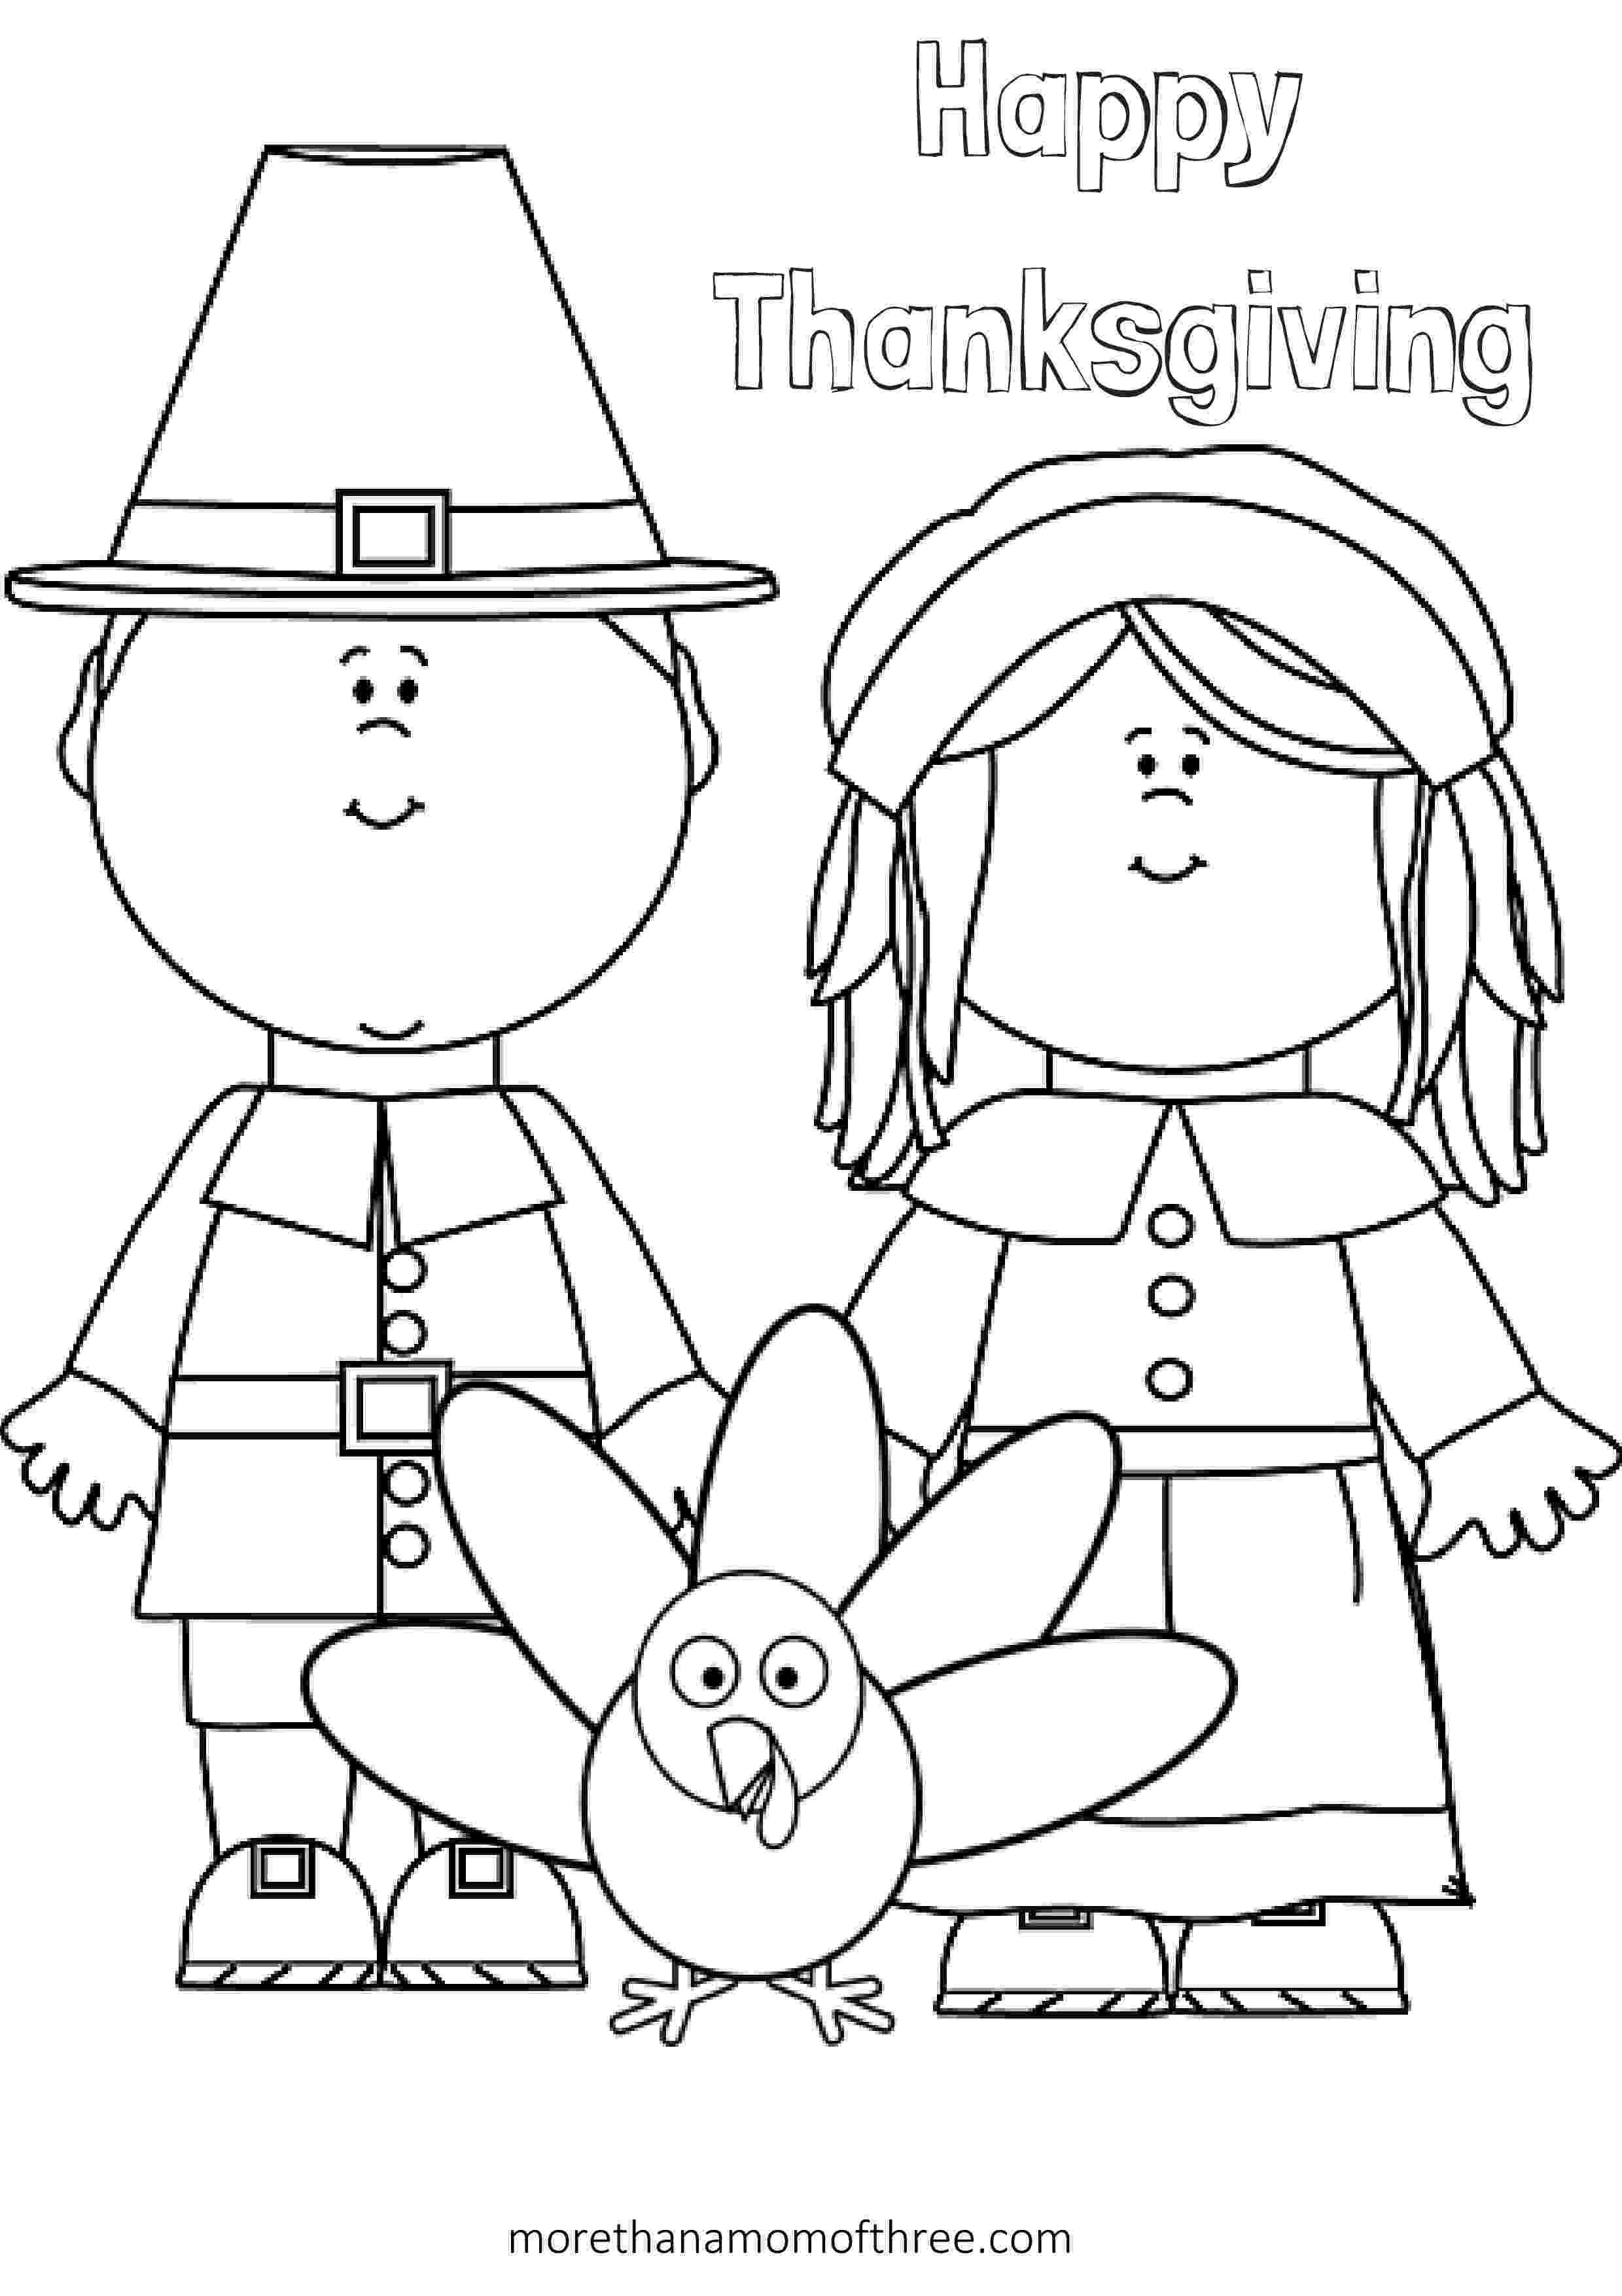 free turkey coloring pages turkey coloring page free printable learn to count pages coloring turkey free